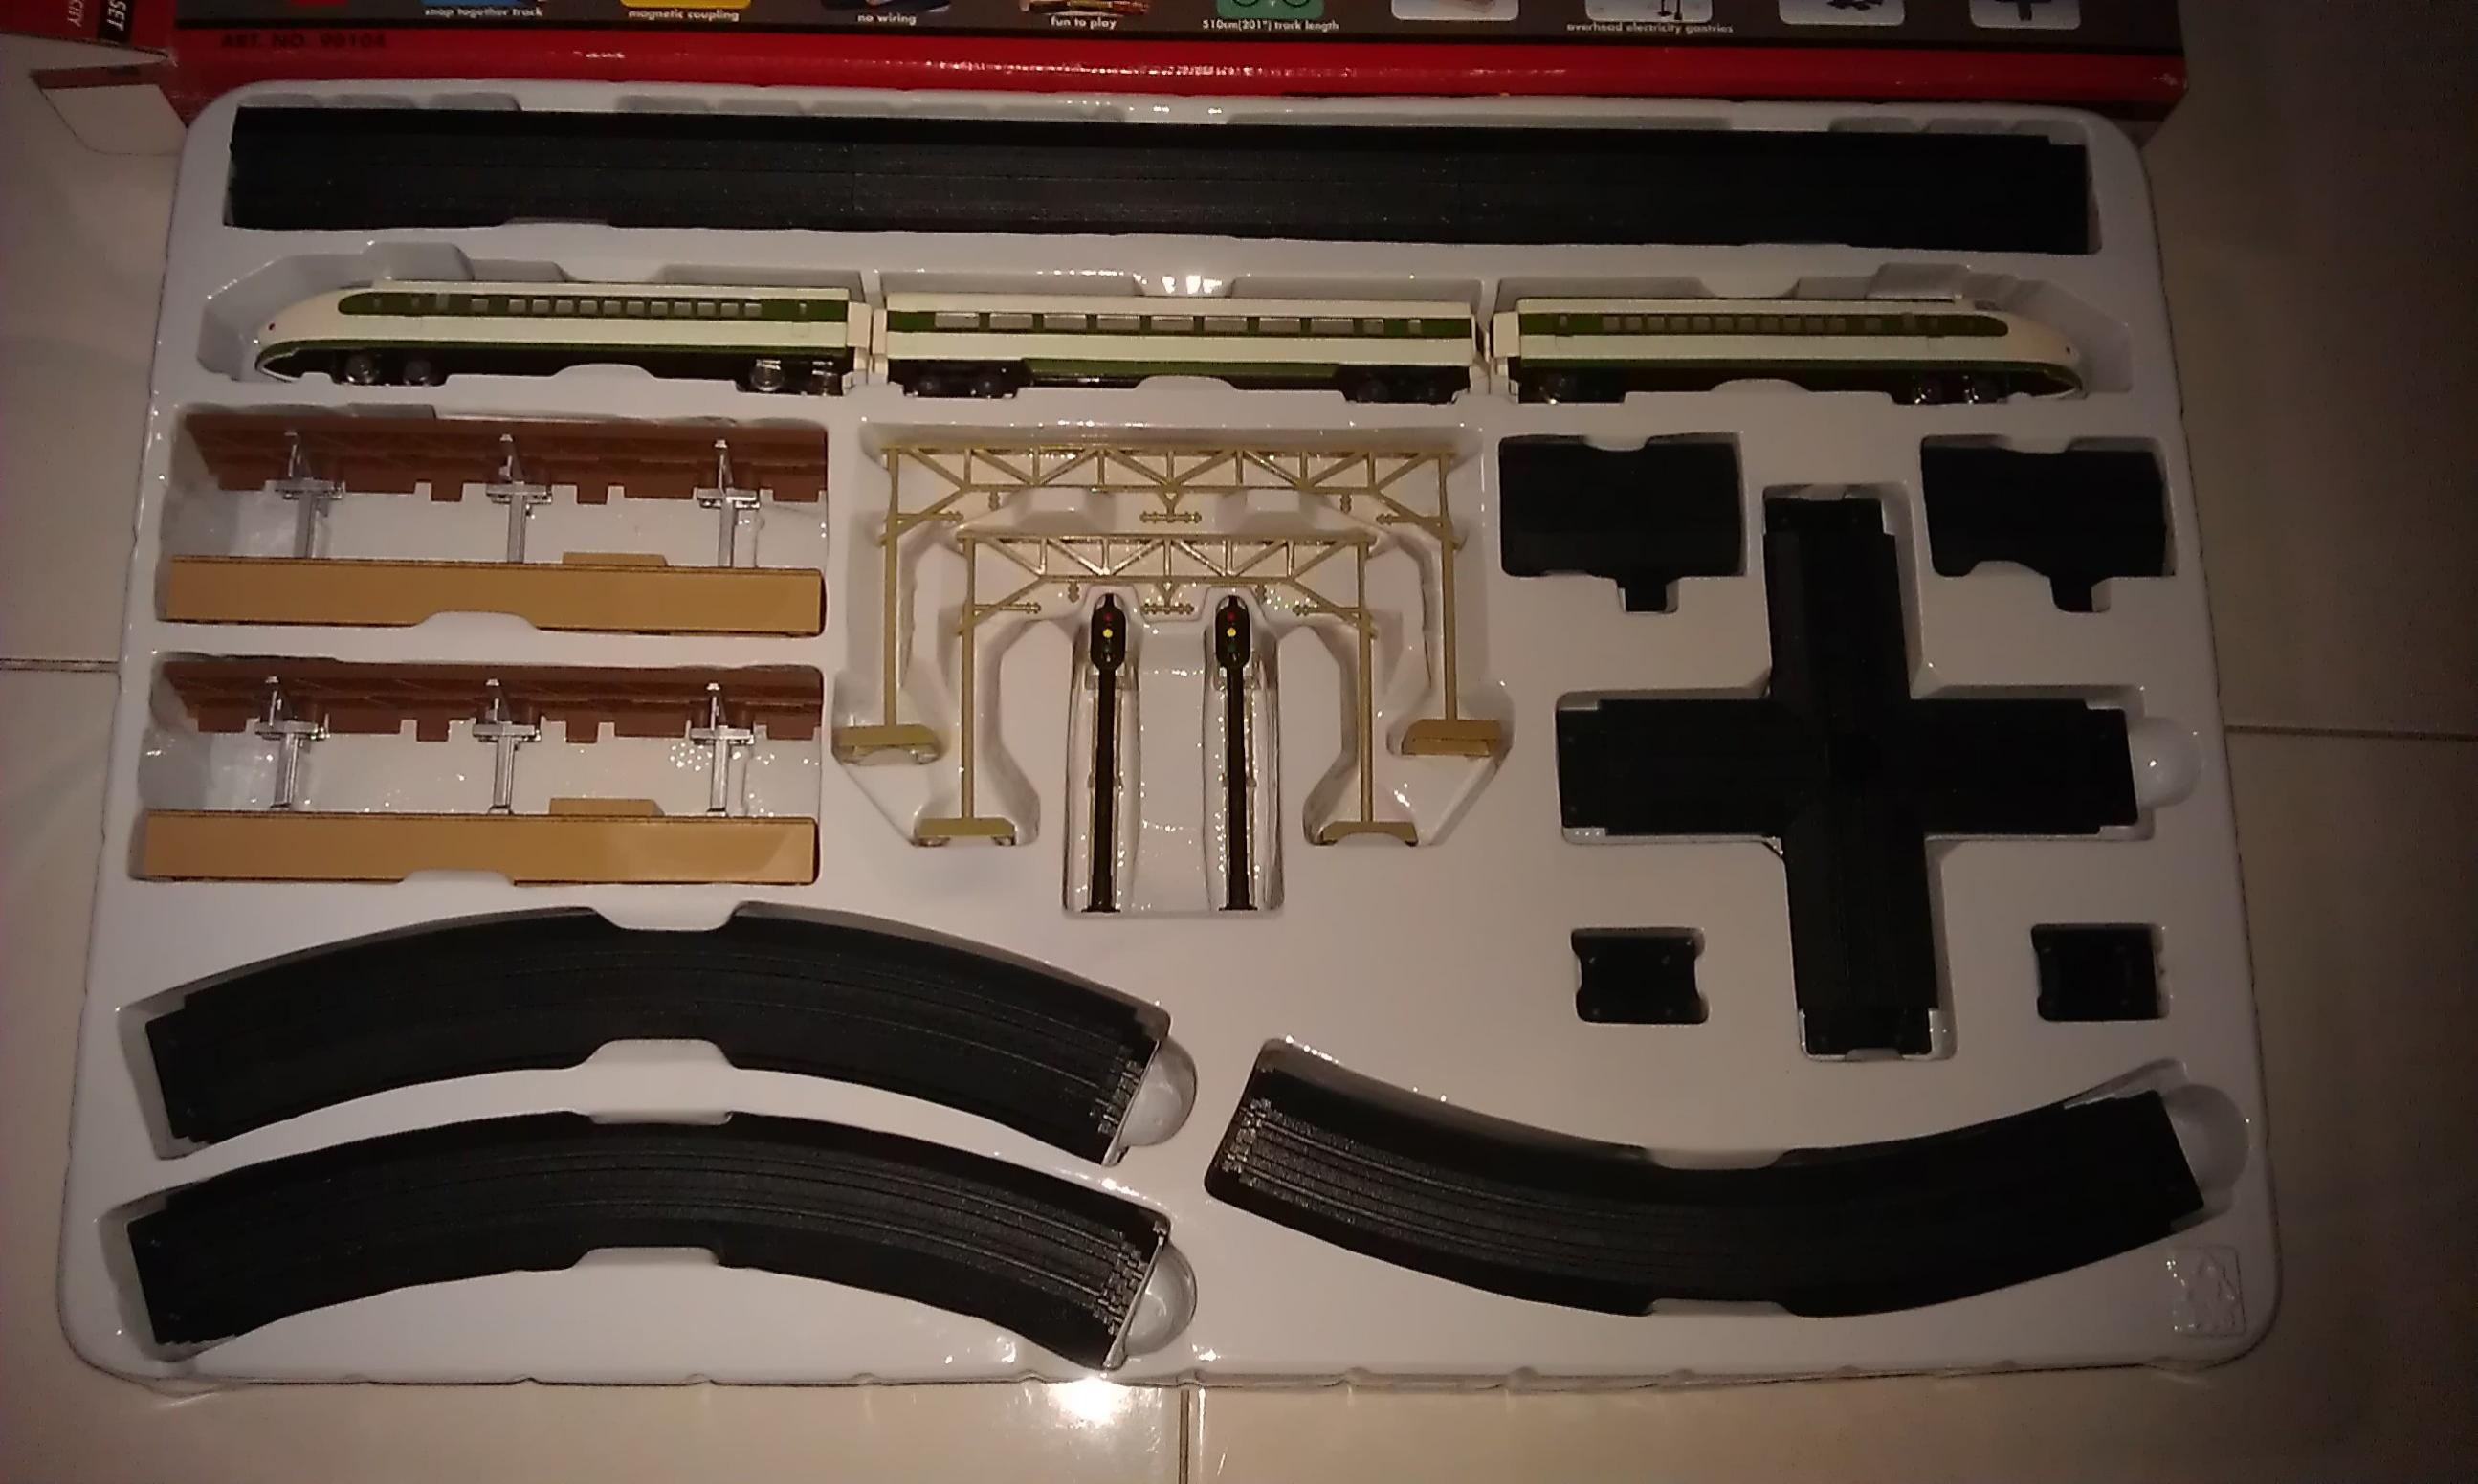 WTS Non RC battery operated 'N' scale train set - R/C Tech